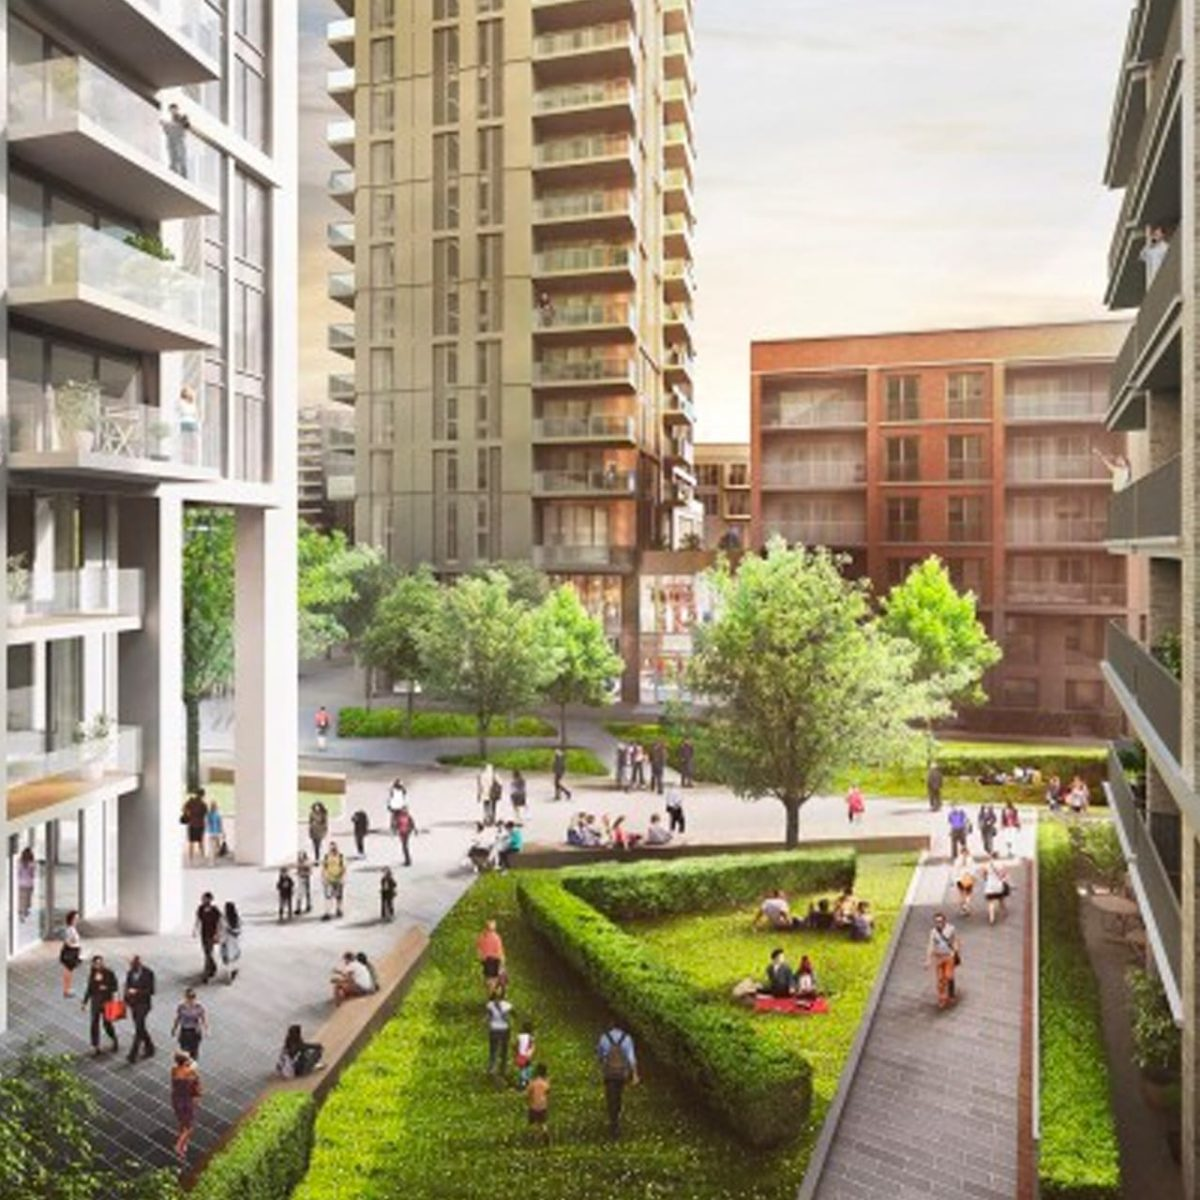 Whitechapel regeneration – a competitive destination for shopping, culture and education in the capital.